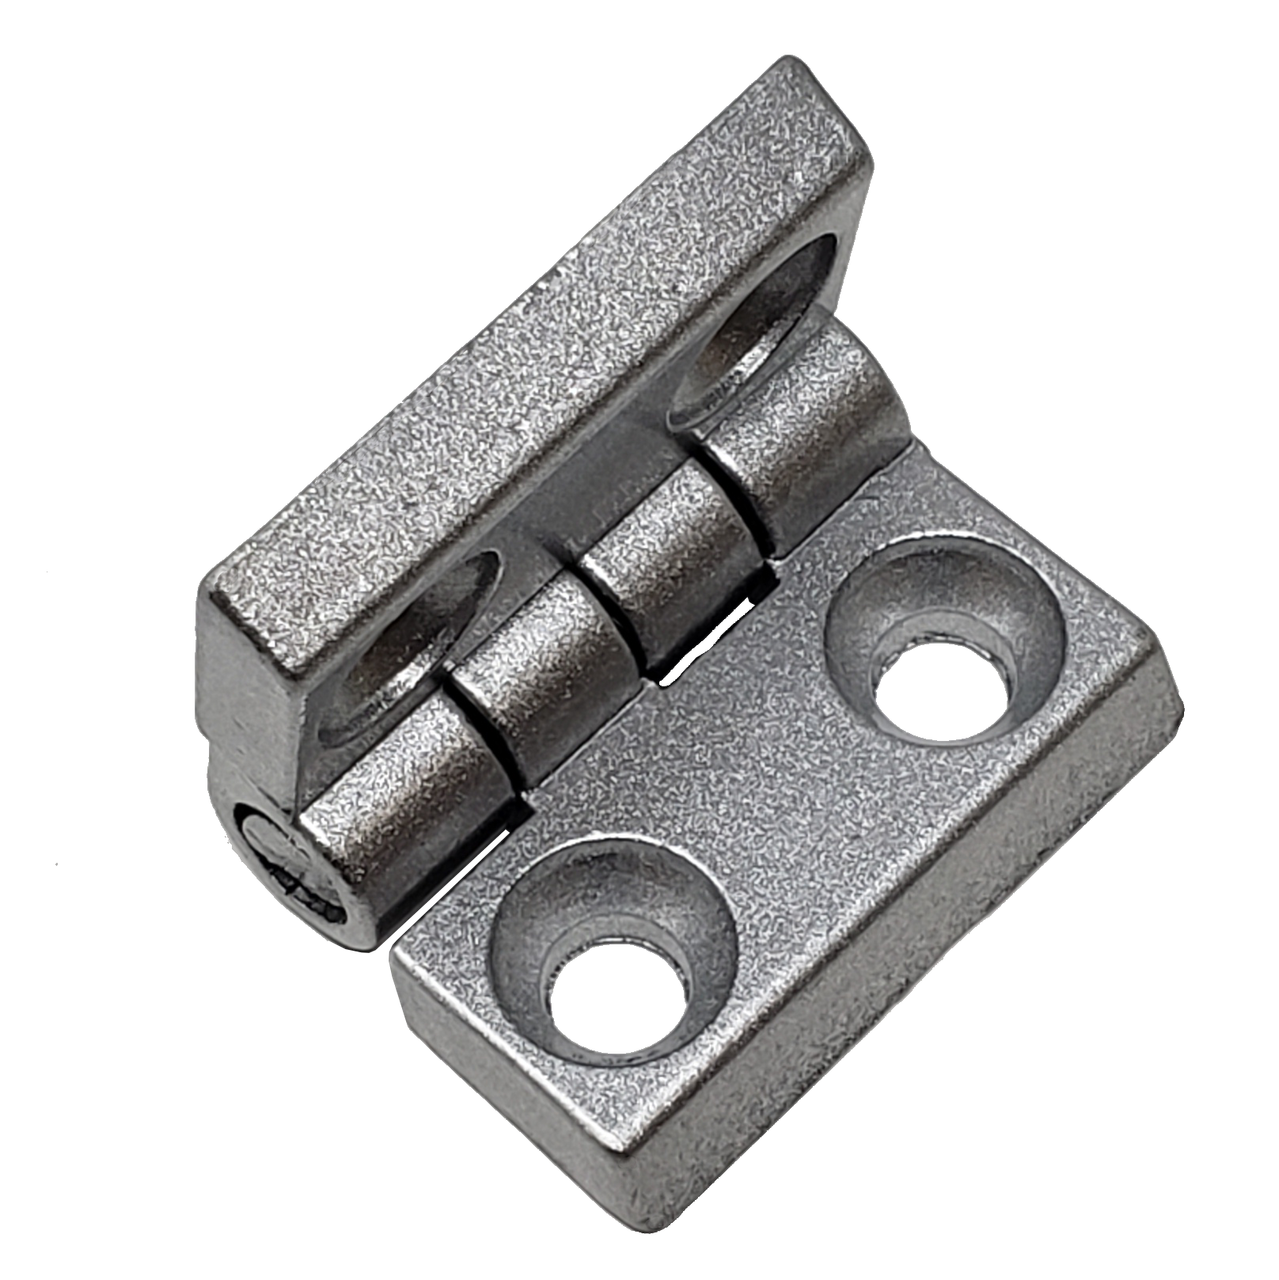 NEW - T-slot Aluminum Extrusion 3030 Door Hinge